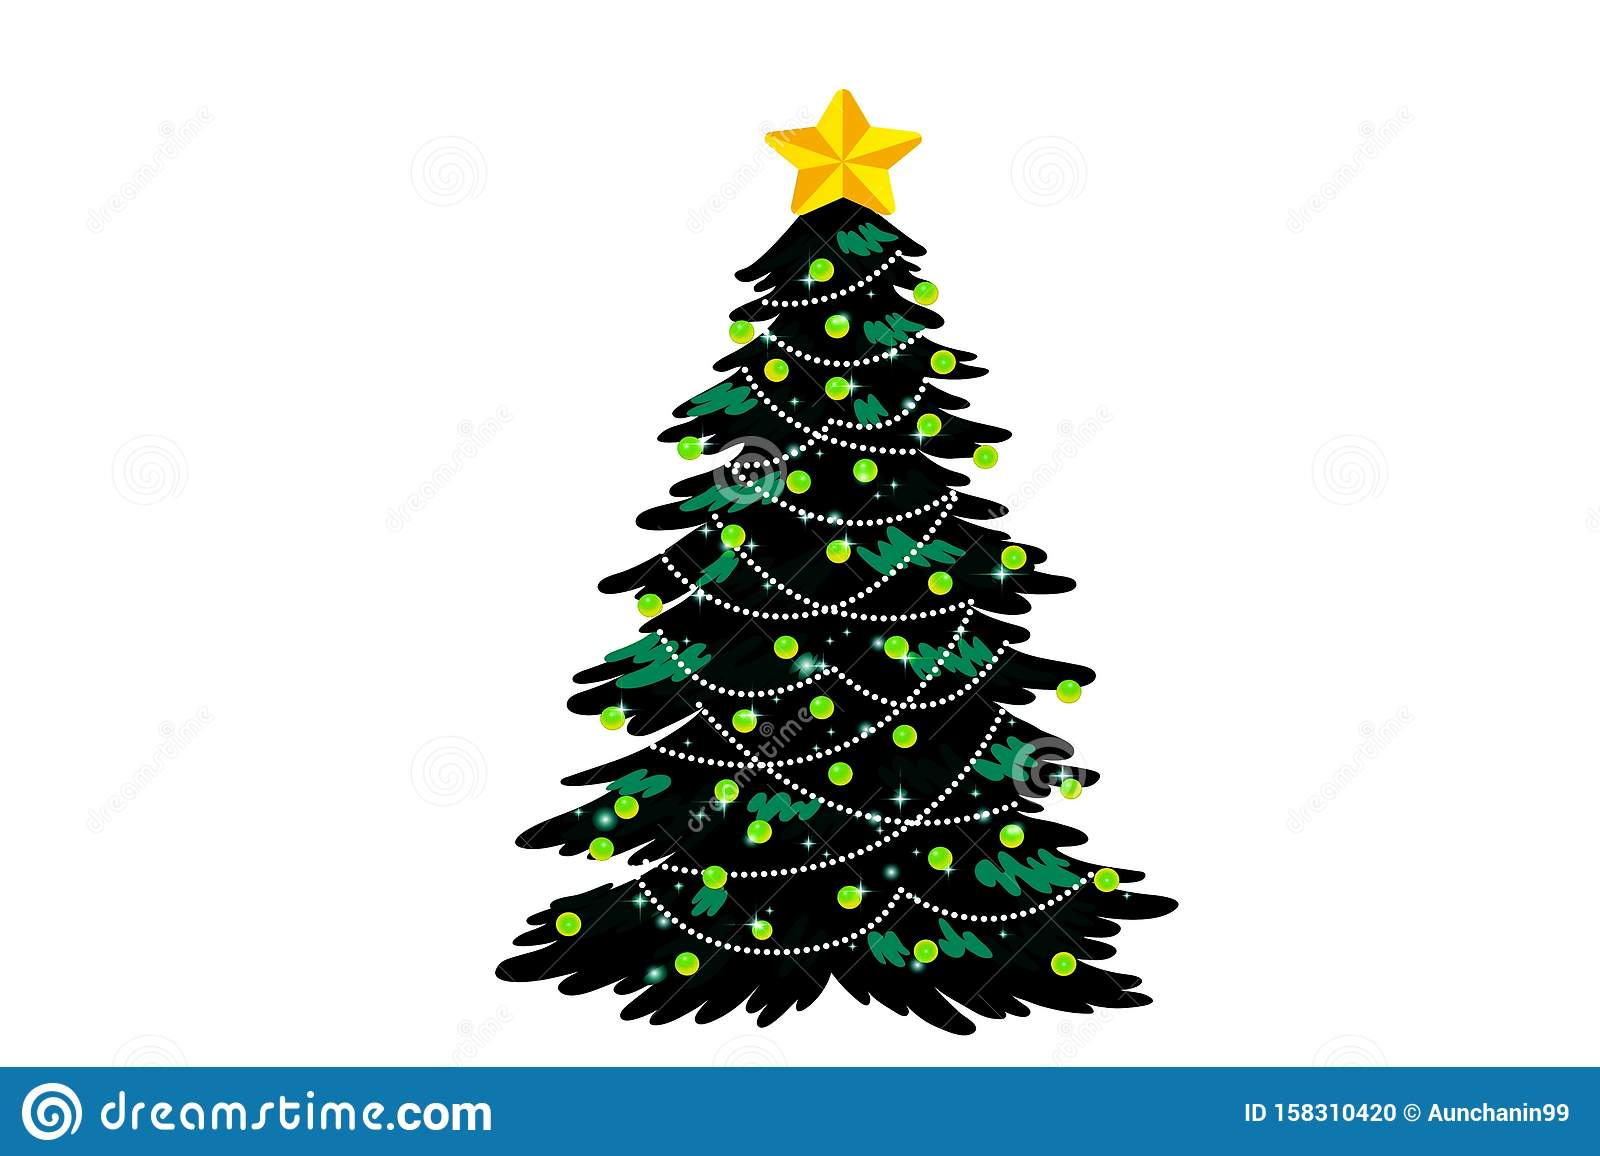 Christmas tree with hanging balls isolated on white background.